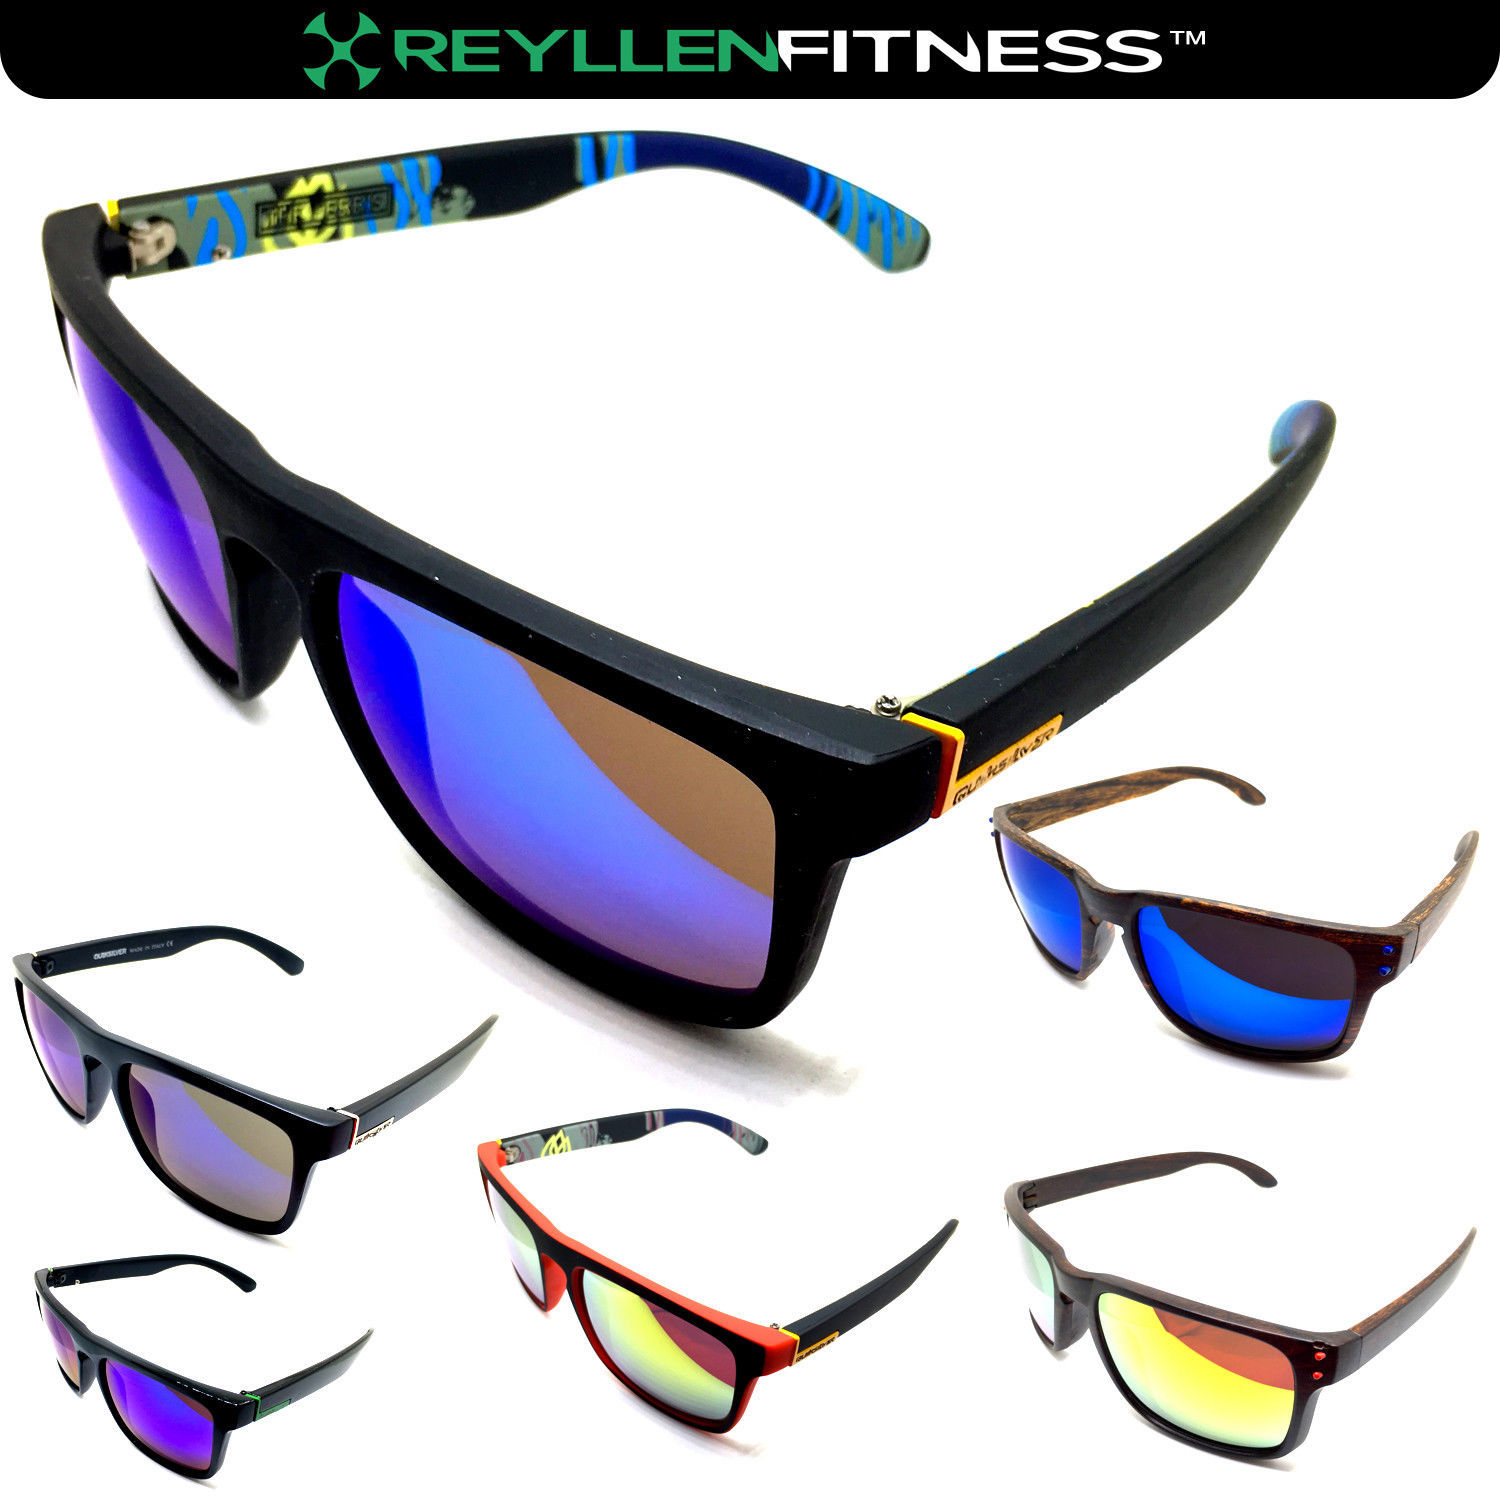 3cdc09f6d00 Summer Polarised Fashion Sport Sunglasses and 35 similar items. 57